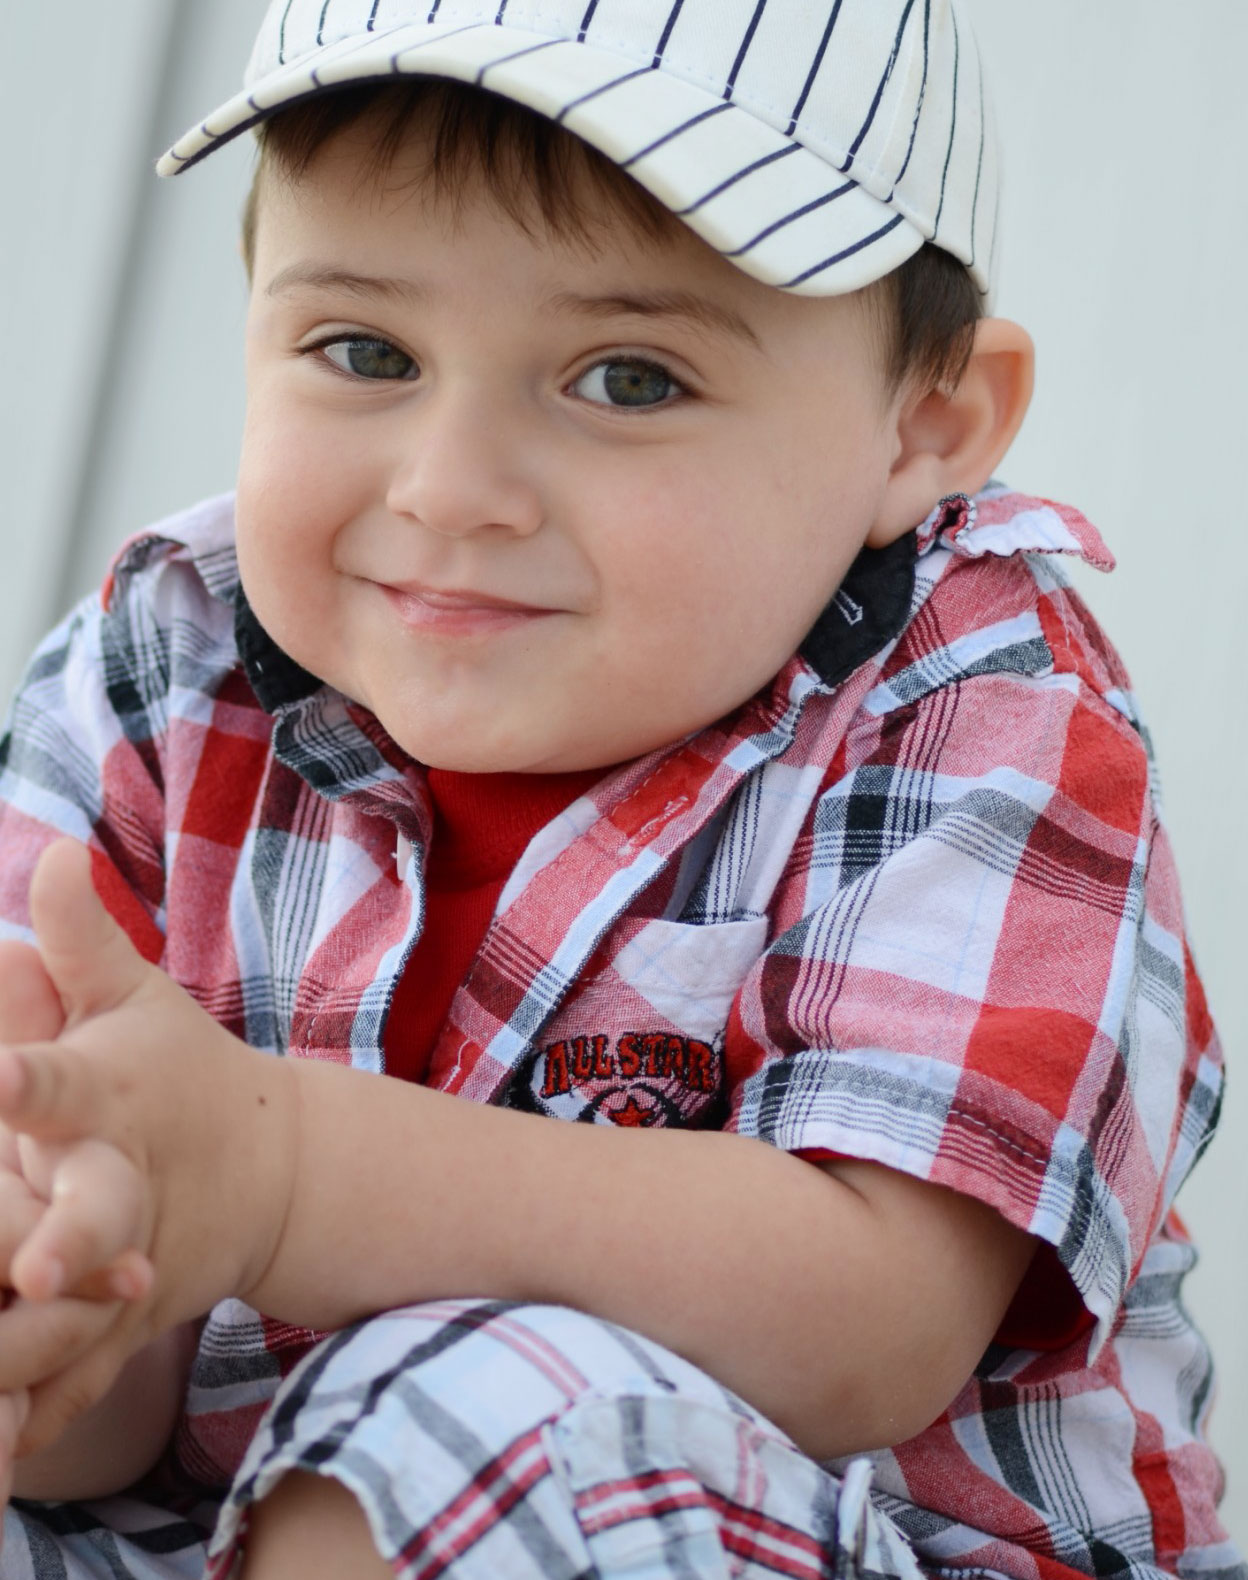 Diane Berkenfeld photo of a little boy looking at the camera smiling